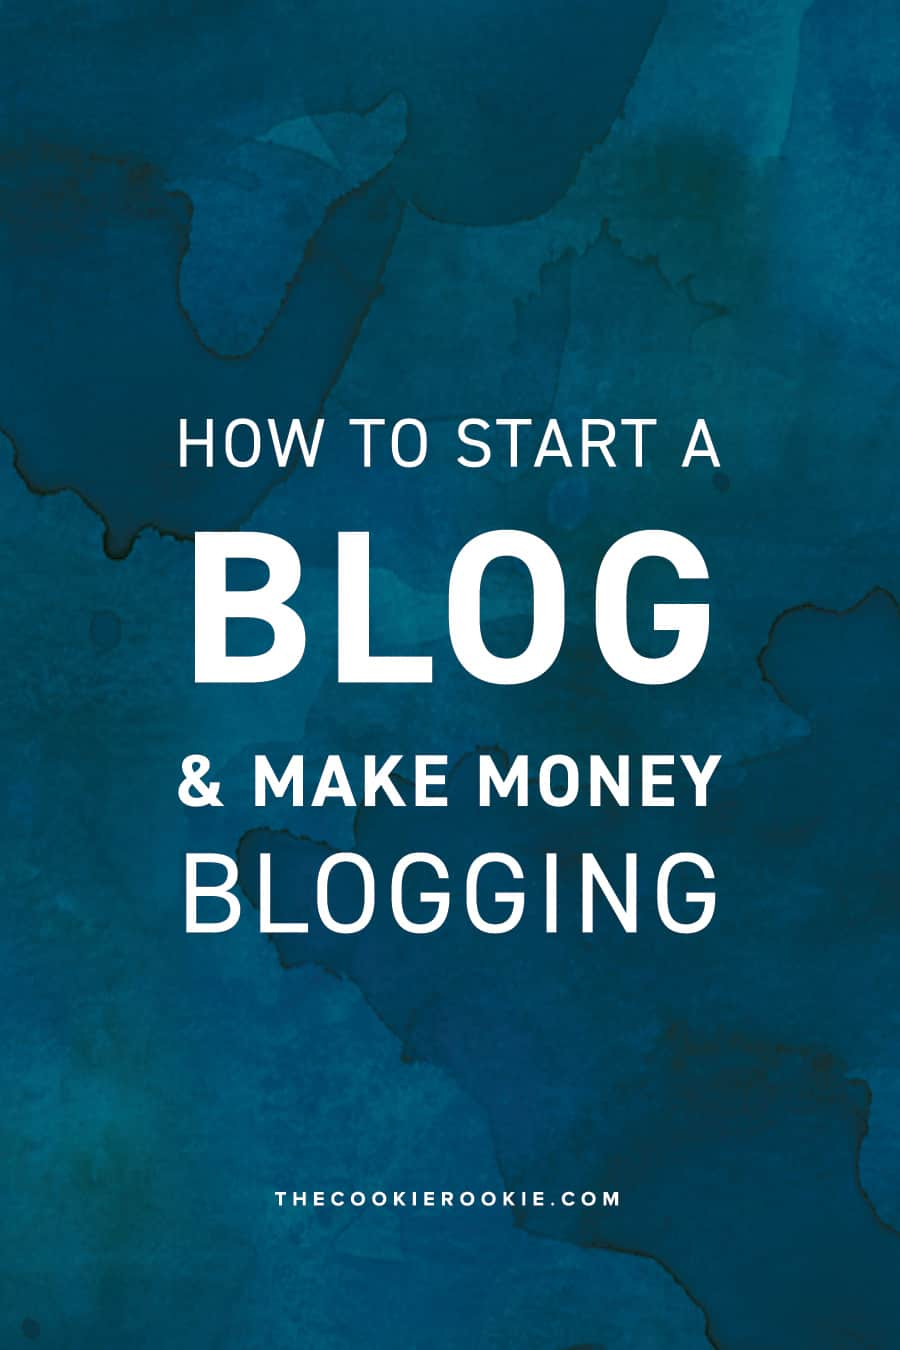 Have you wondered How to Start a Blog and Make Money? Have you wanted to start a blog (a food, travel, lifestyle, fashion, or mommy blog) but been scared to try, or not even KNOWN where to start? It's possible to make A LOT of money blogging, and I'm here to help you get started! You too can learn How to Start a Blog and Make FULL TIME income from blogging. Get to it!